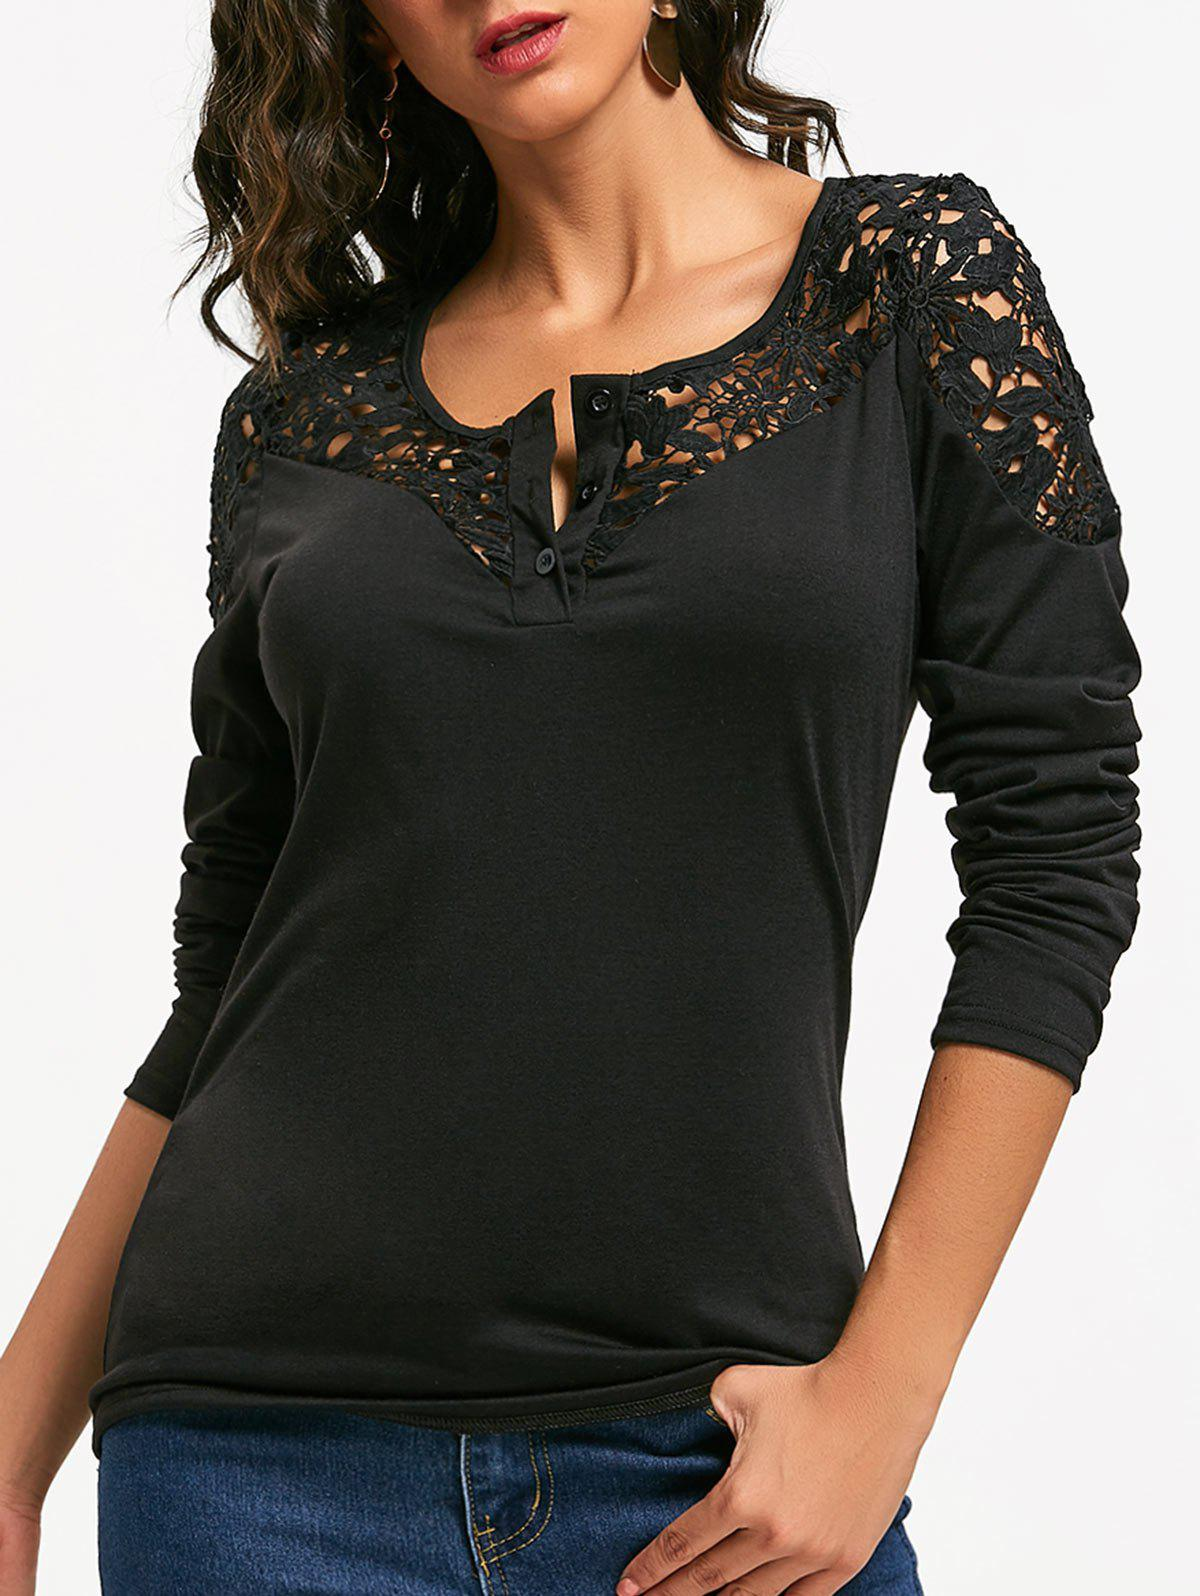 Long Sleeve Crochet Lace Insert TopWOMEN<br><br>Size: L; Color: BLACK; Material: Polyester; Shirt Length: Regular; Sleeve Length: Full; Collar: Round Neck; Style: Fashion; Embellishment: Lace; Pattern Type: Solid Color; Season: Fall,Spring; Weight: 0.3500kg; Package Contents: 1 x Top;